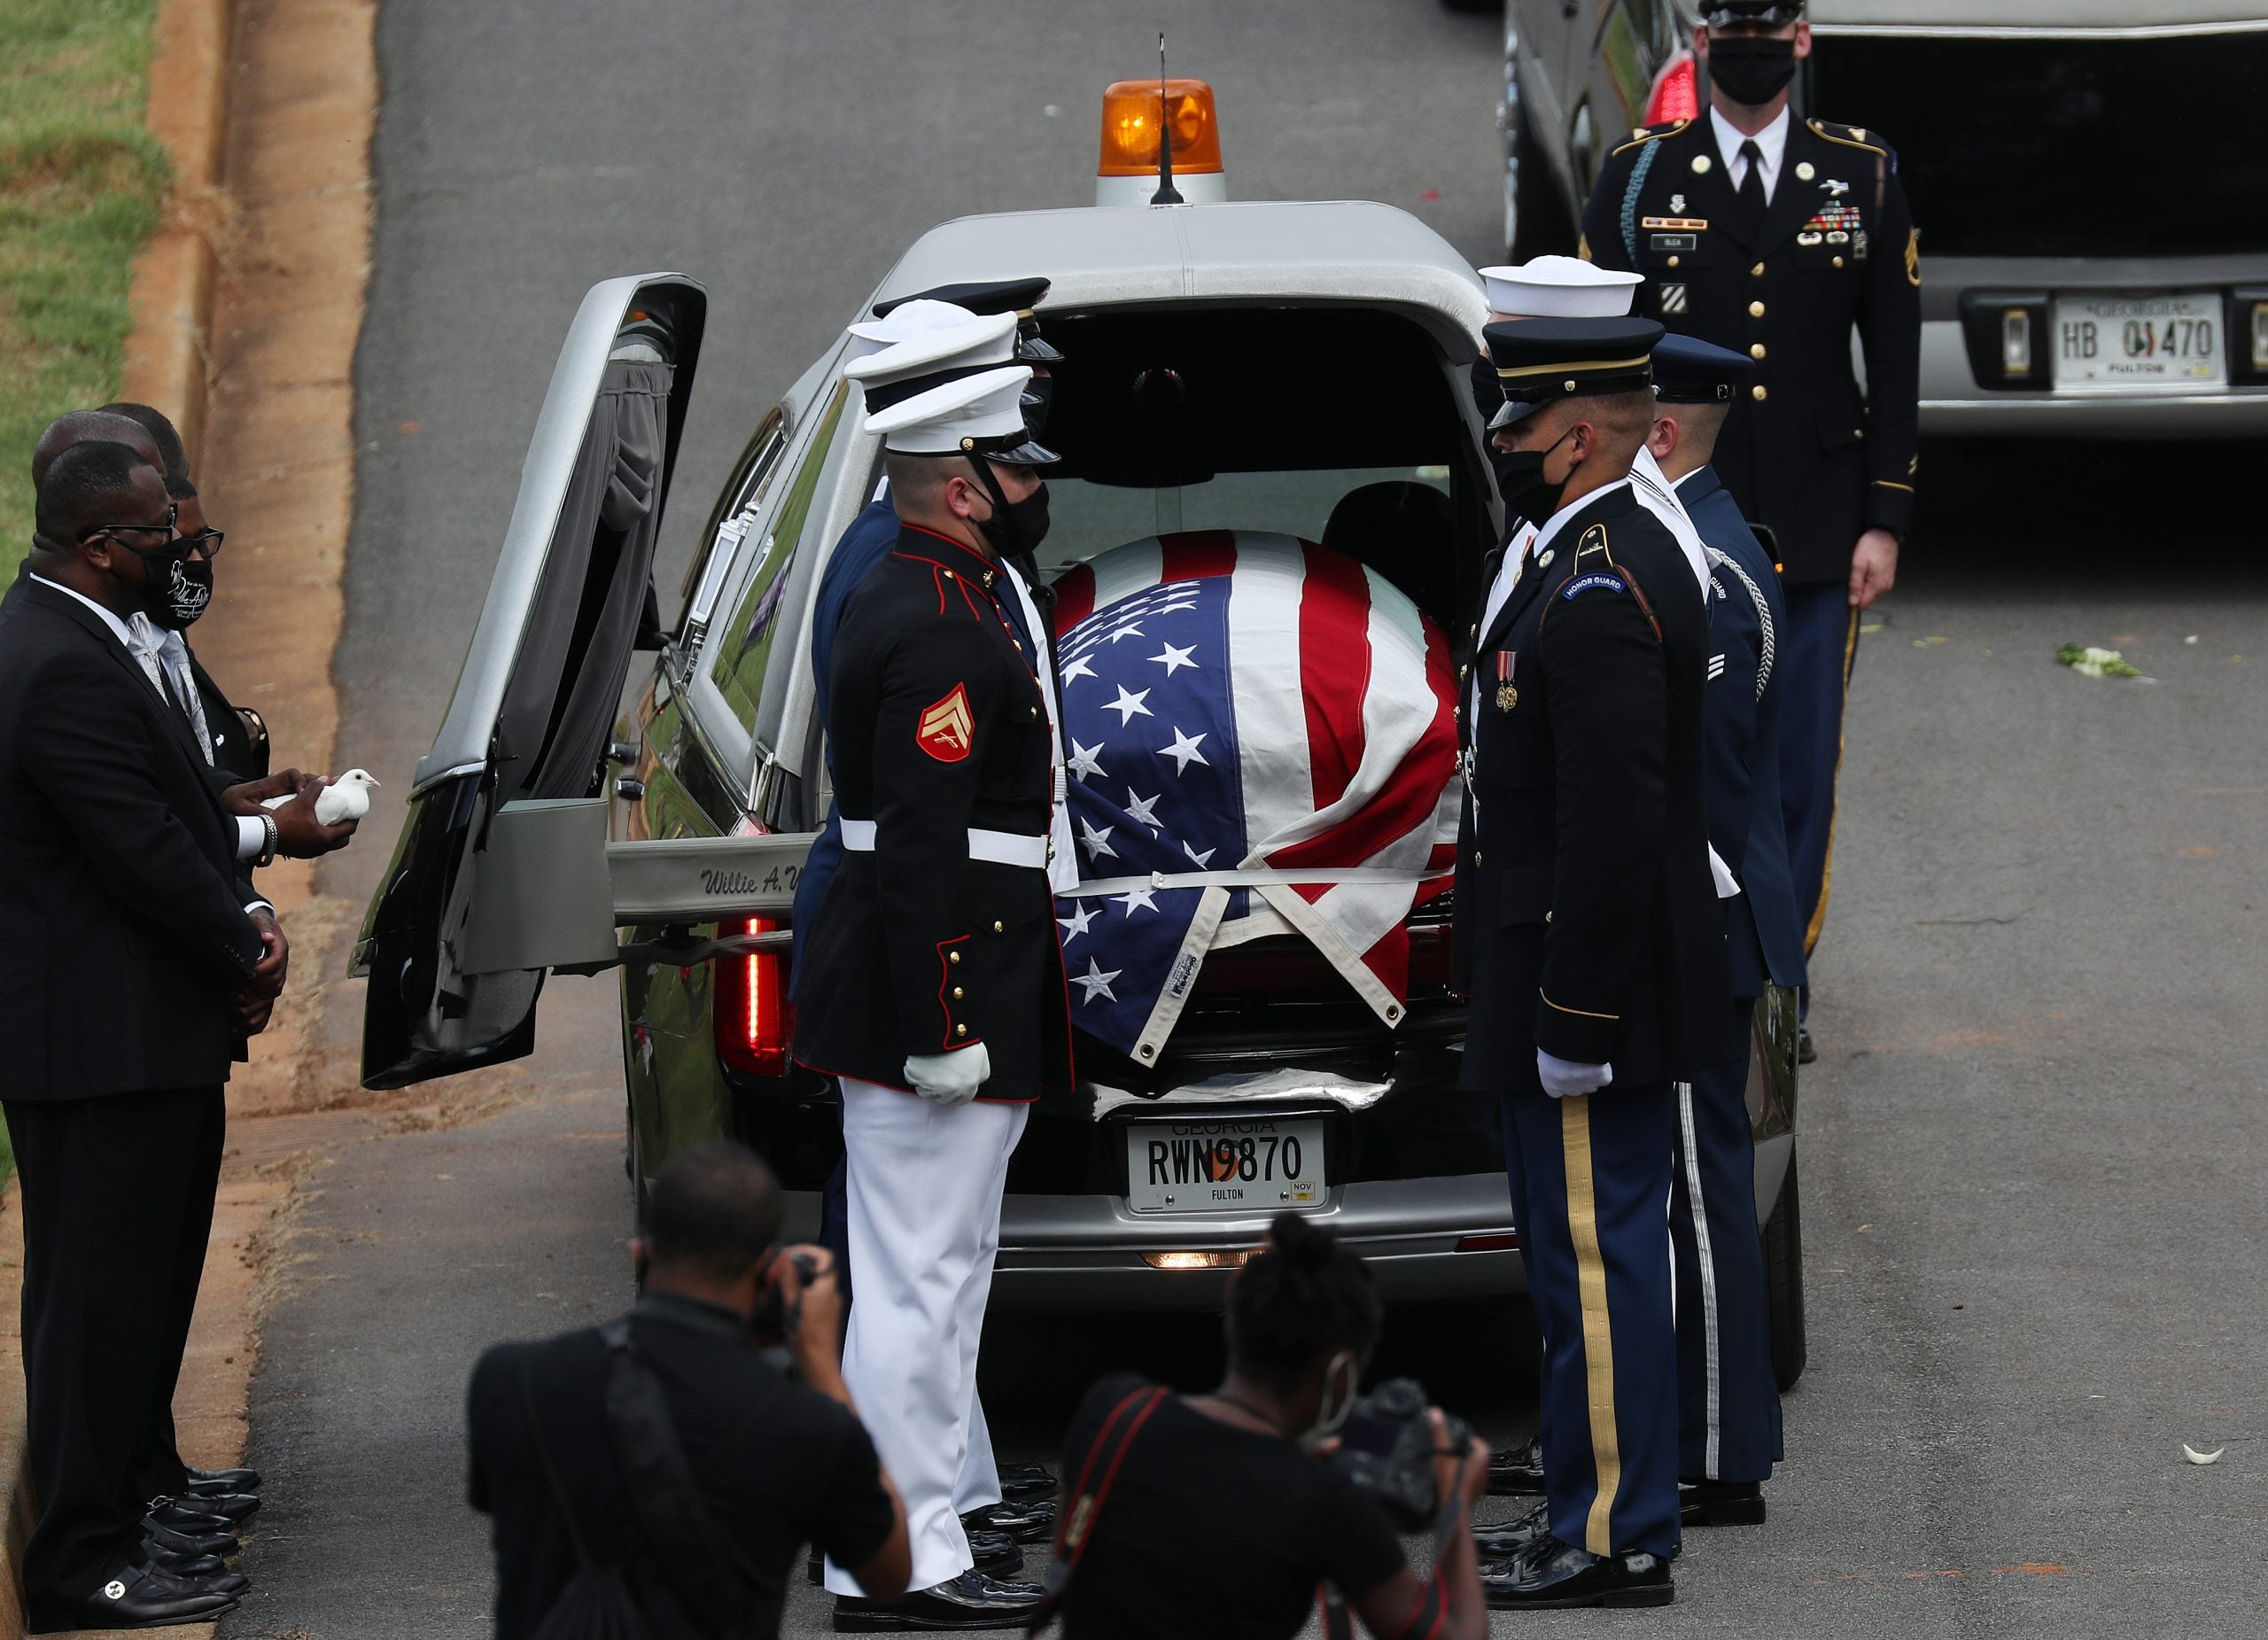 Members of the joint services military honor guard carry the casket of Rep. John Lewis (D-GA) during his funeral at the South-View Cemetery on July 30, 2020 in Atlanta, Georgia. Former U.S. President Barack Obama delivered the eulogy for the late Democratic congressman while former presidents George W. Bush and Bill Clinton also paid tribute. Rep. Lewis was a civil rights pioneer, contemporary of Dr. Martin Luther King, Jr. and helped to organize and address the historic March on Washington in August 1963.